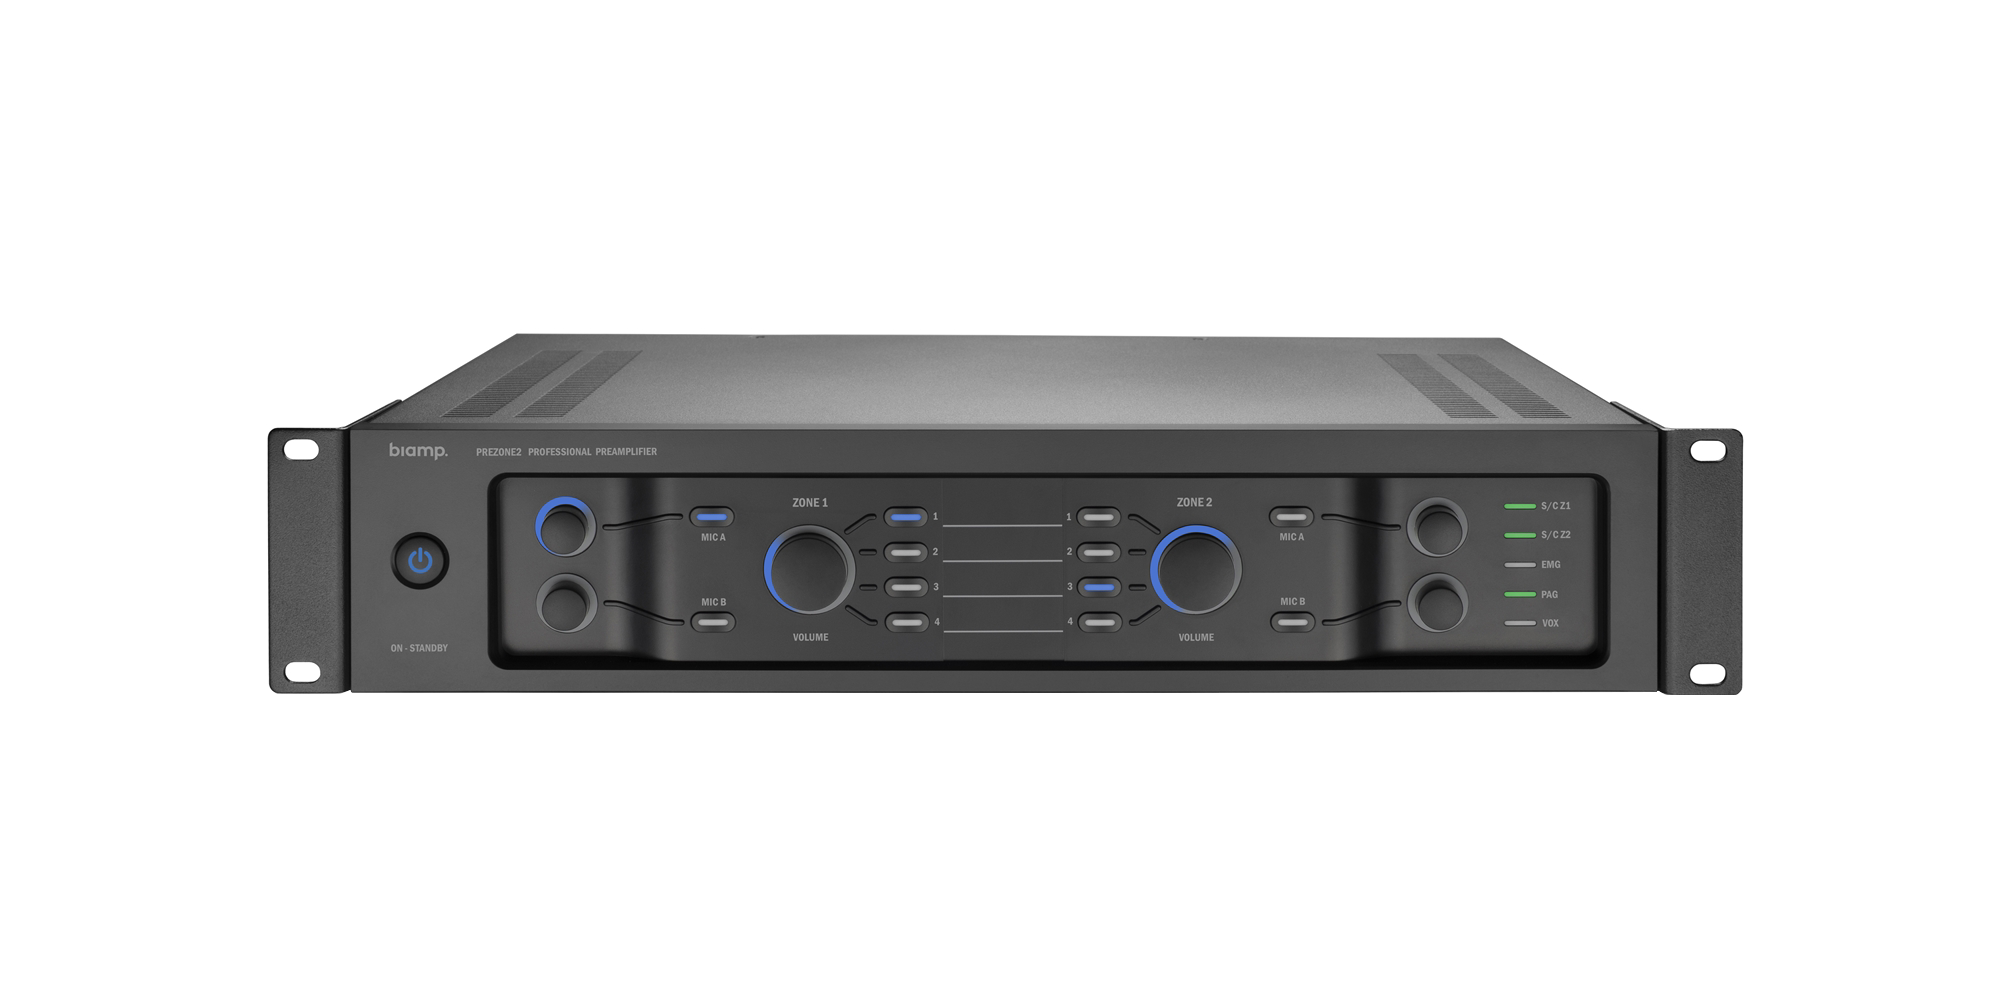 PREZONE2 independently control music source selection & volume in 2 stereo zones & 2 microphones